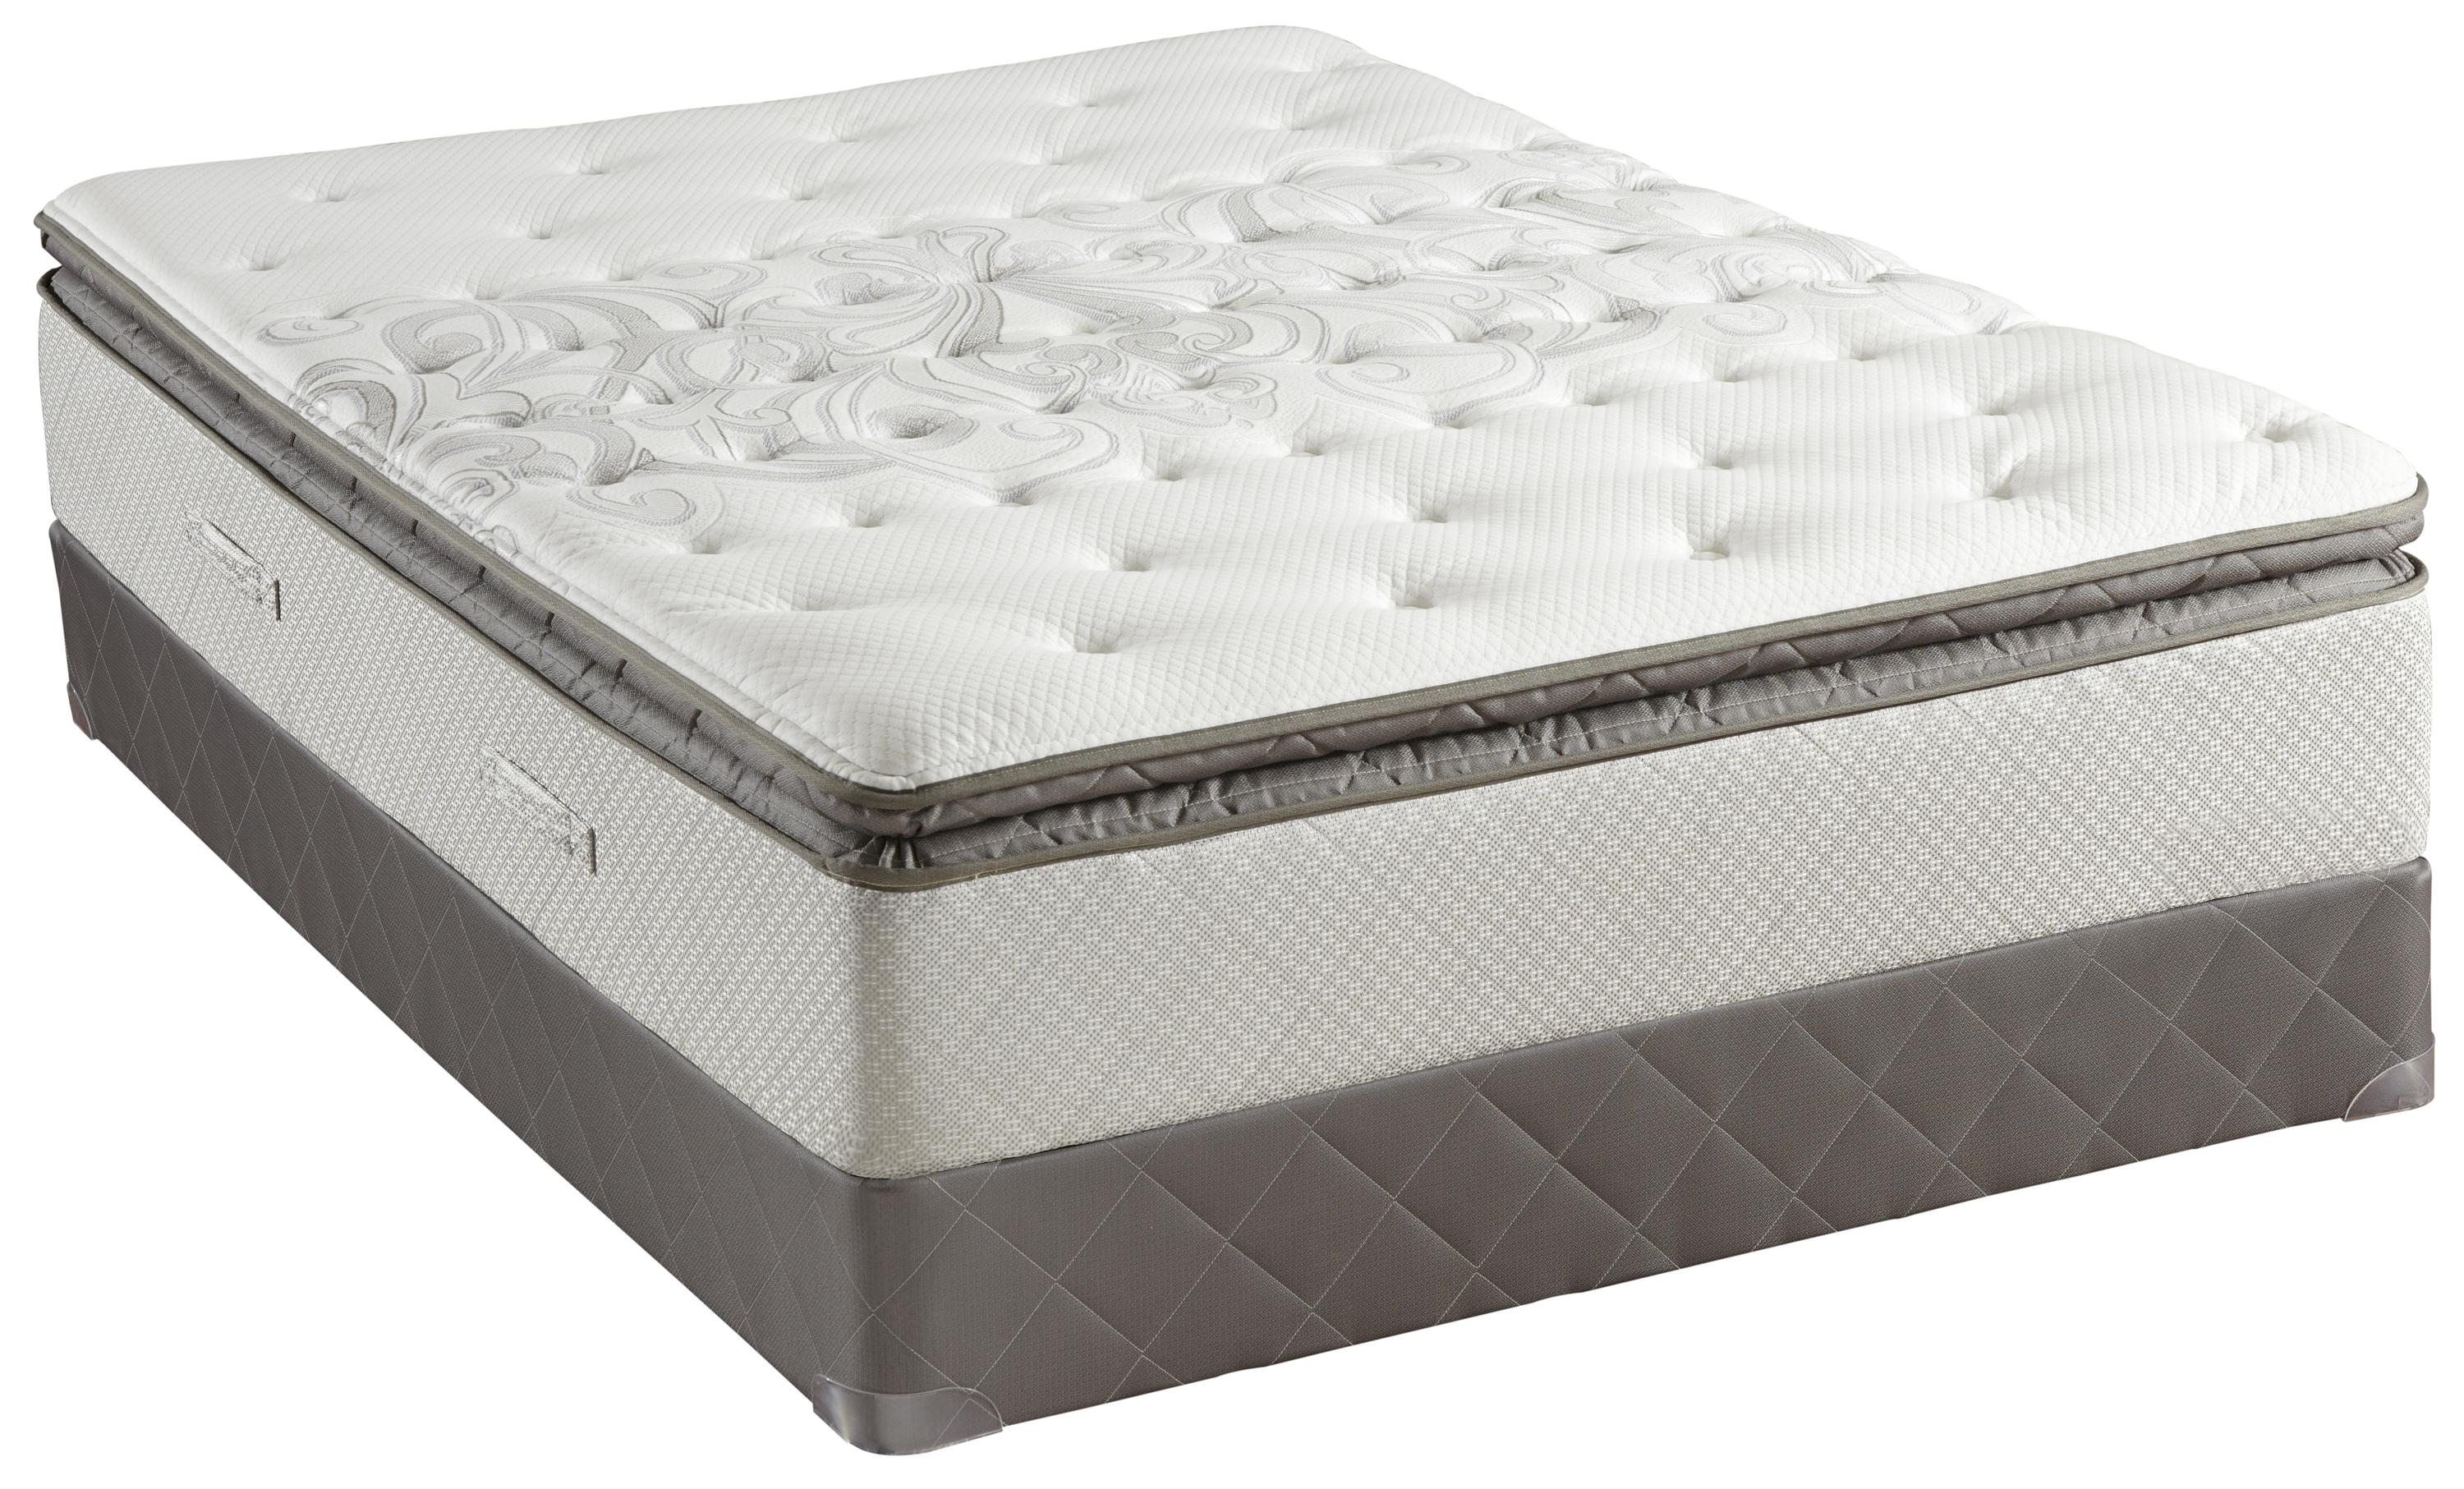 Sealy Posturepedic Gel Oak Knoll Queen Cushion Firm Euro Pillow Top Mattress Prime Brothers